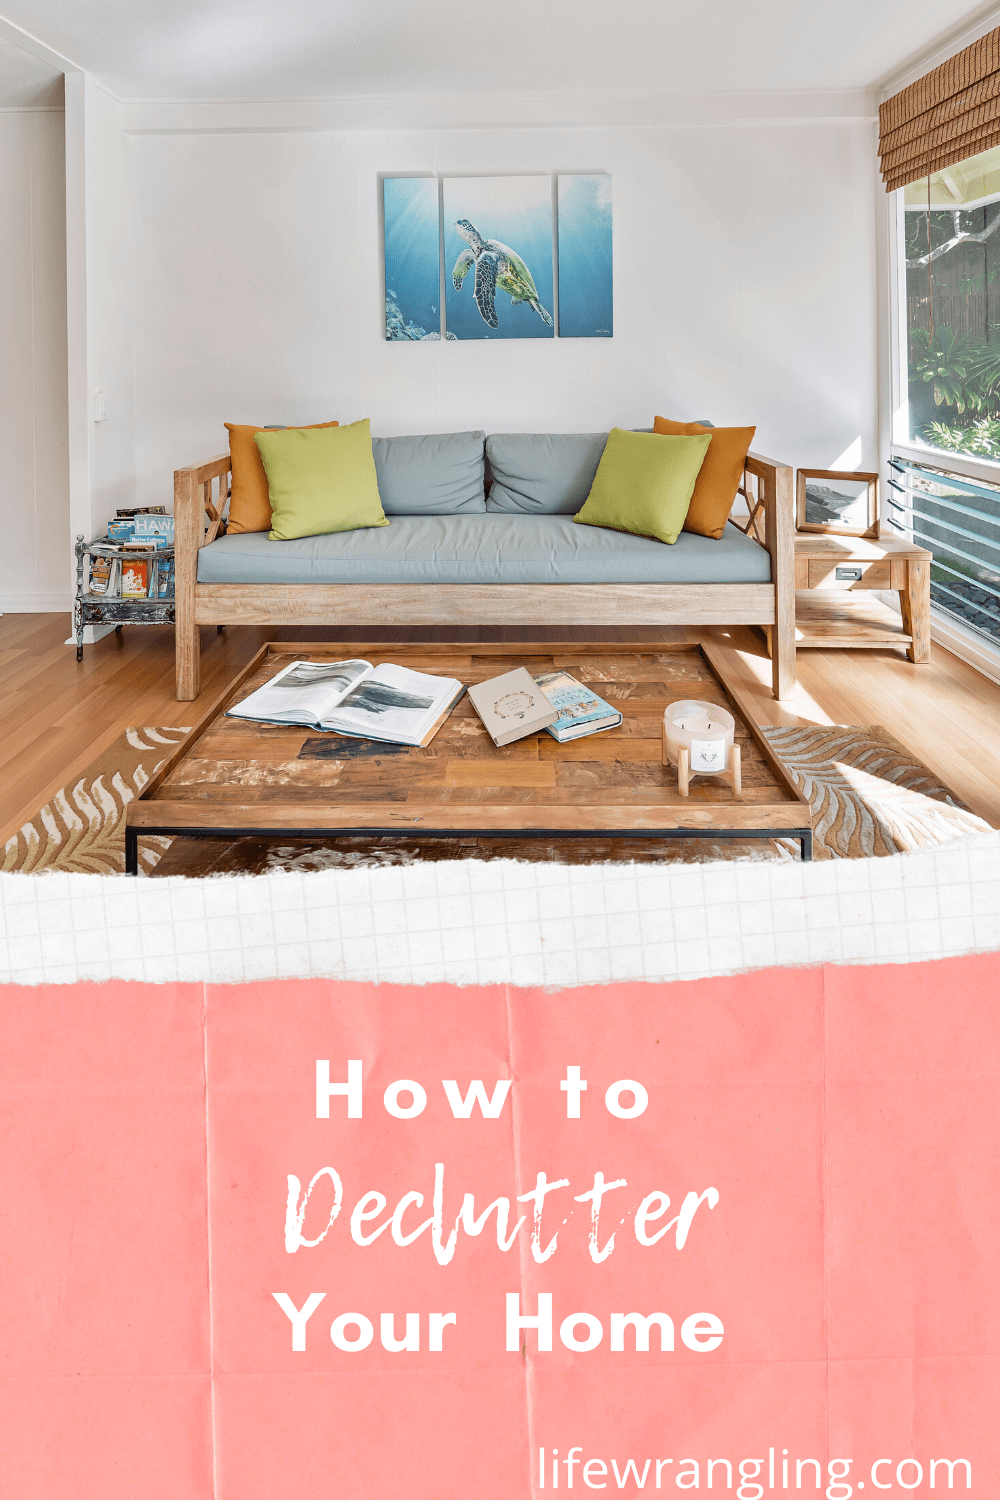 How to get motivated to declutter a messy home